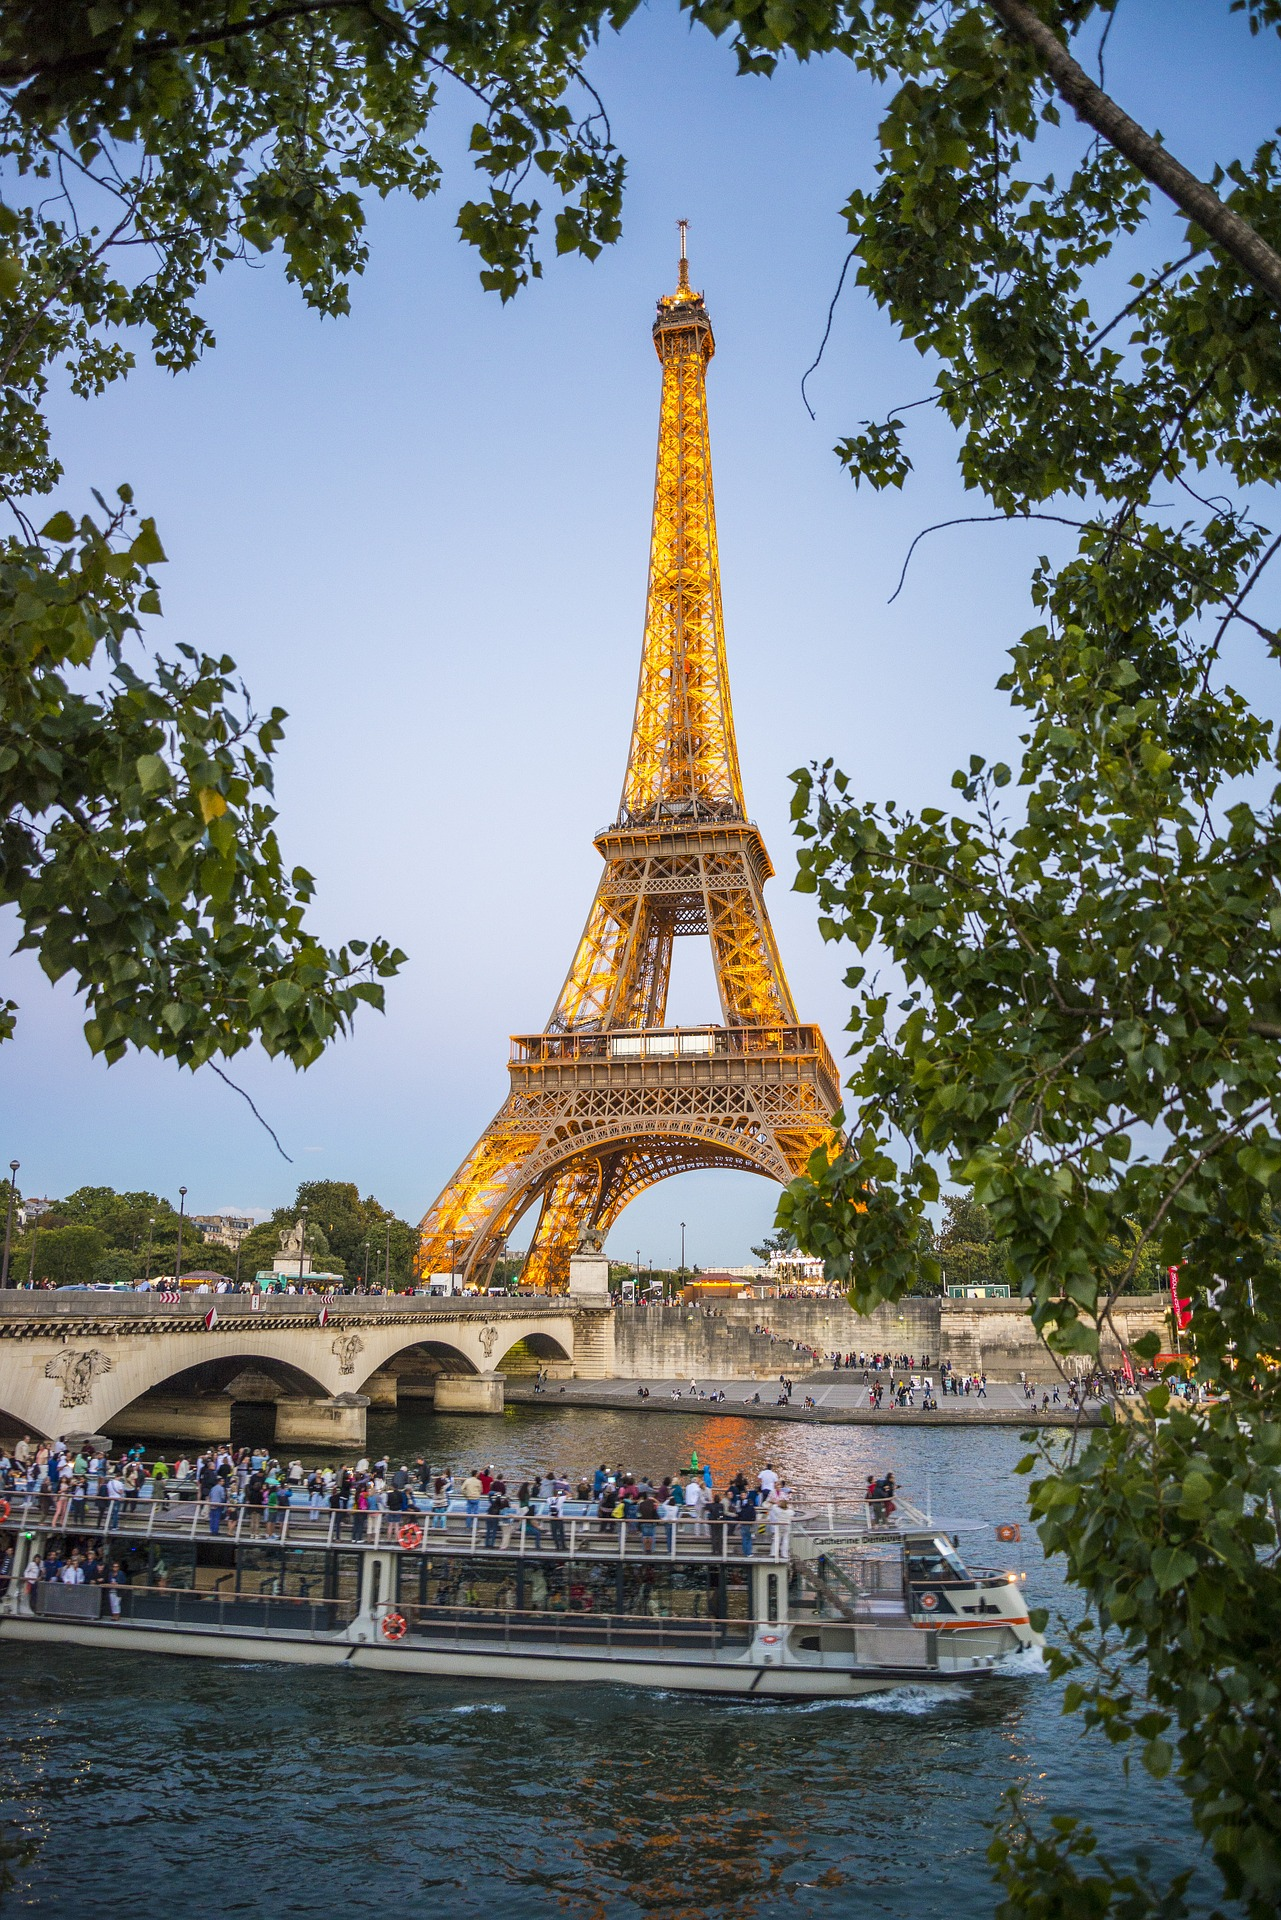 Eiffel Tower in its golden colour